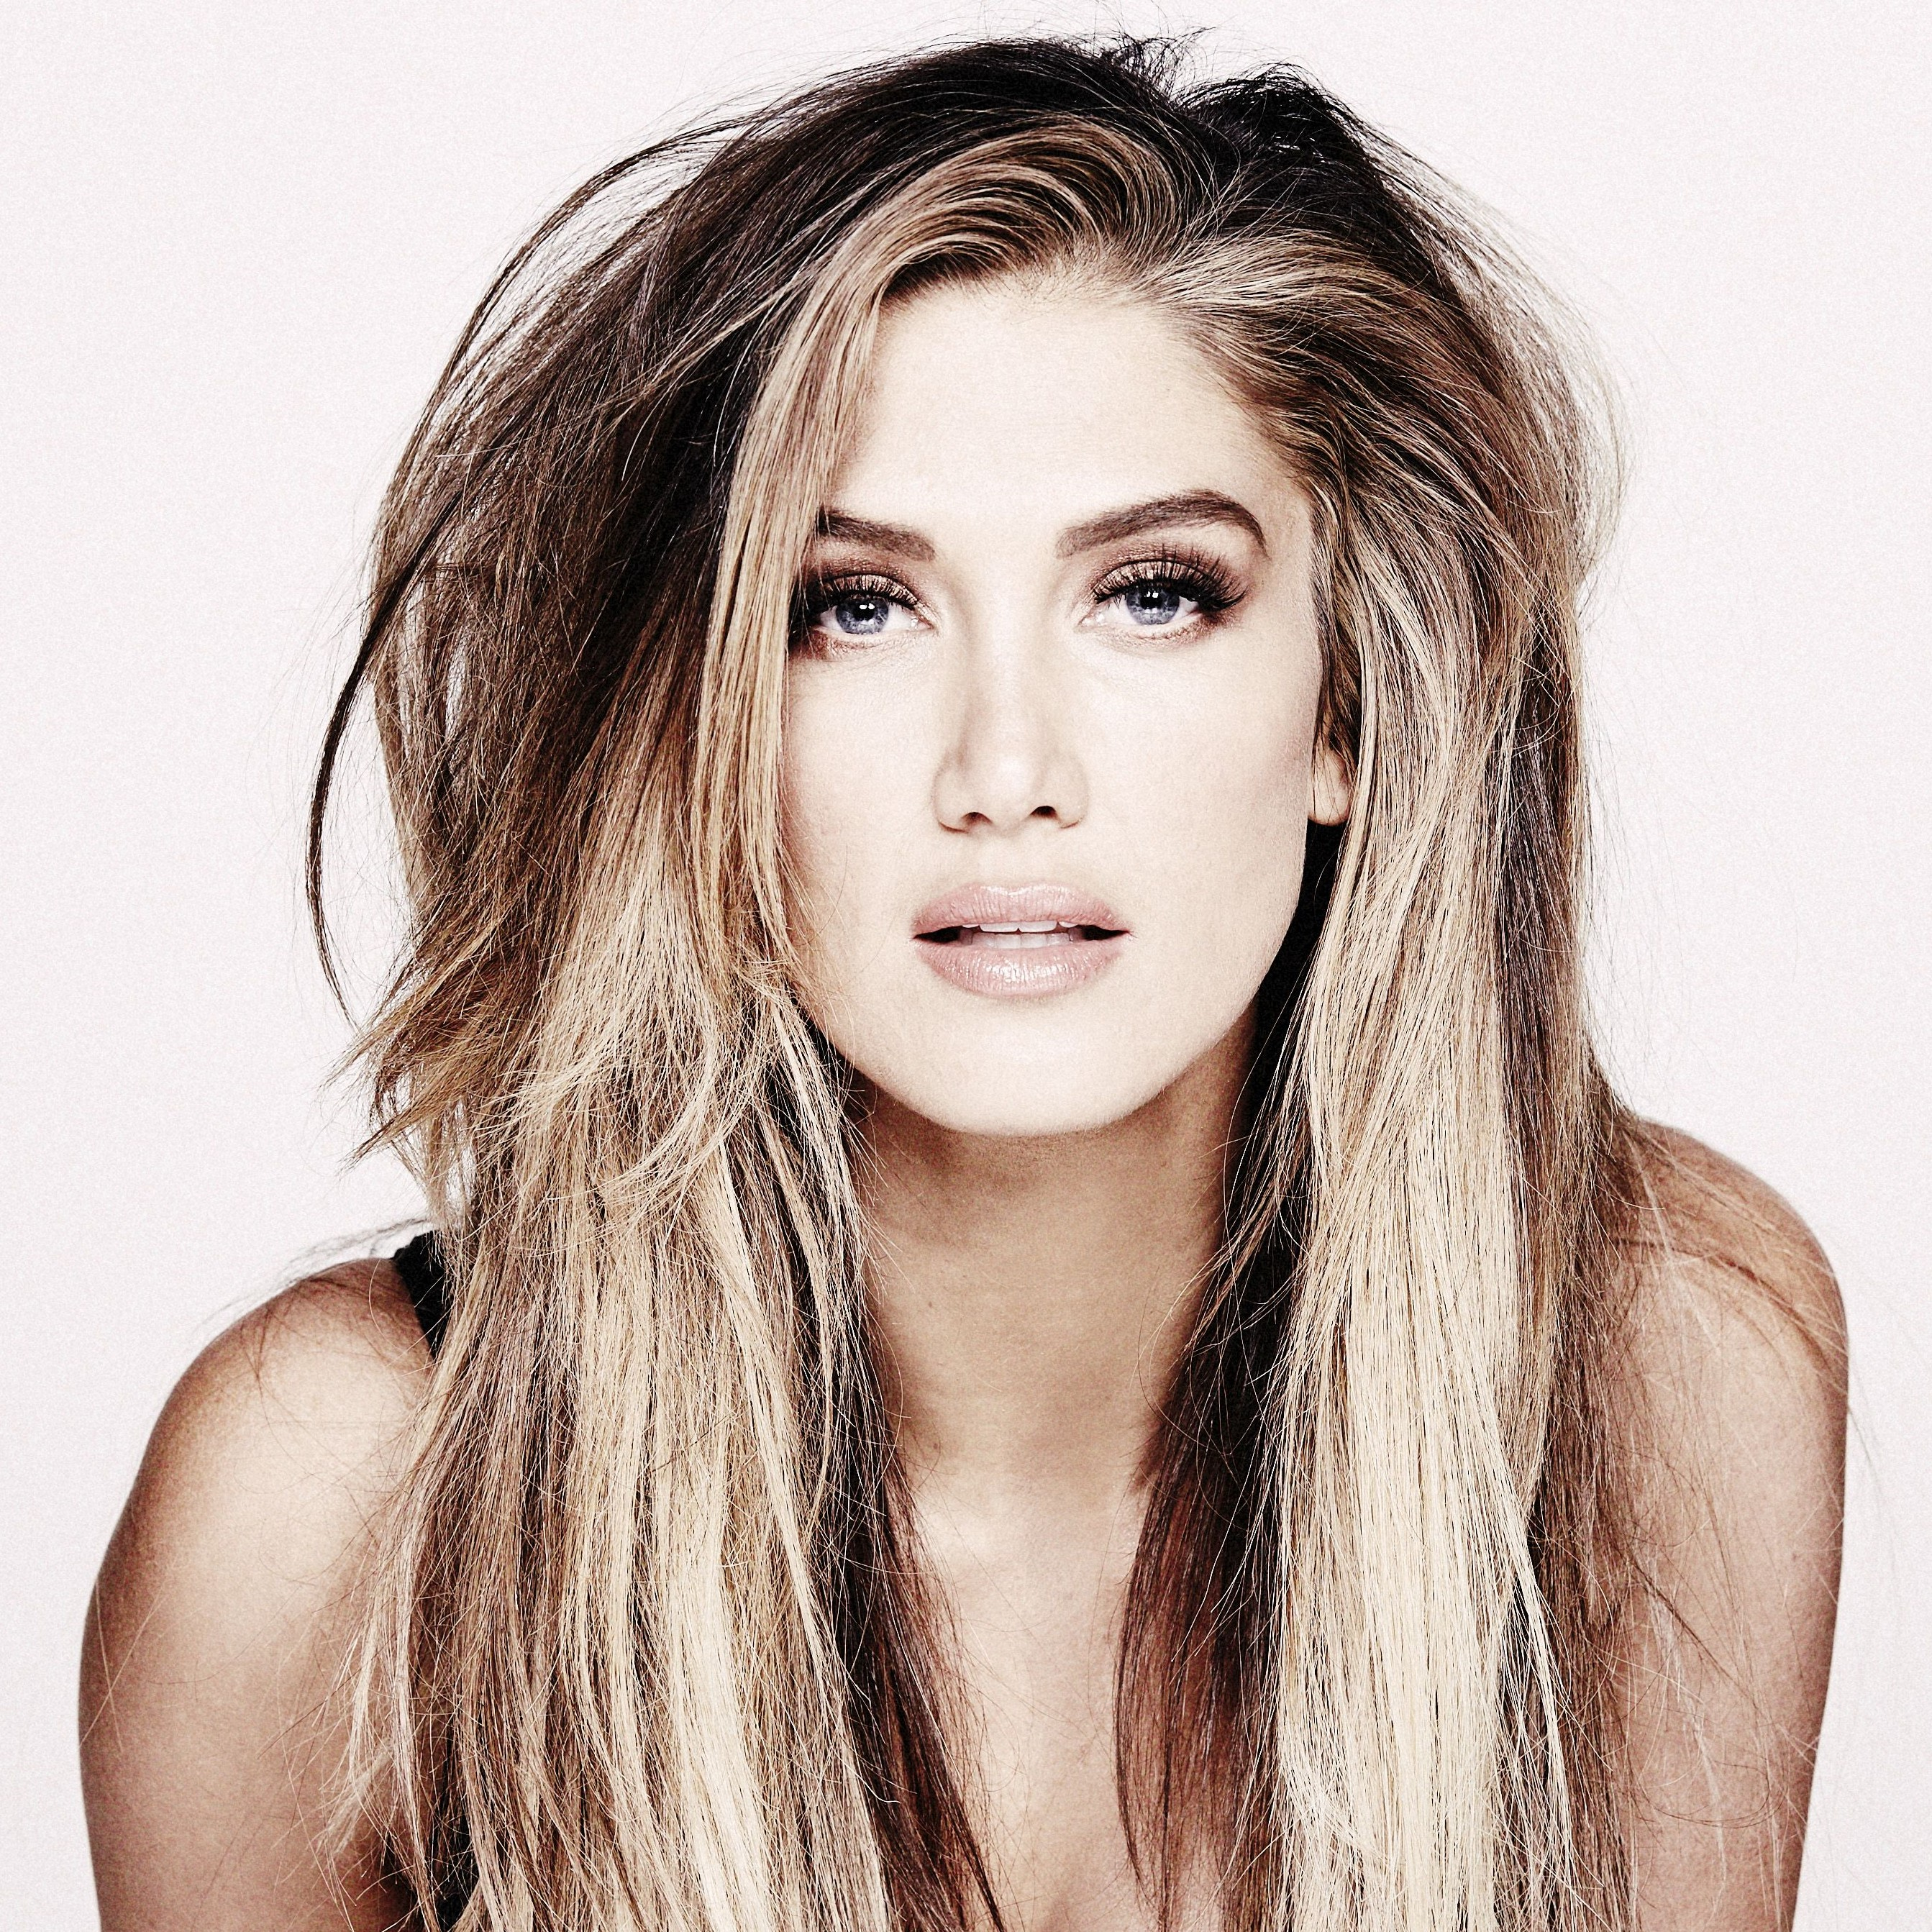 Delta Goodrem's Album 'Wings Of The Wild' Reaches #1 On ARIA Chart!